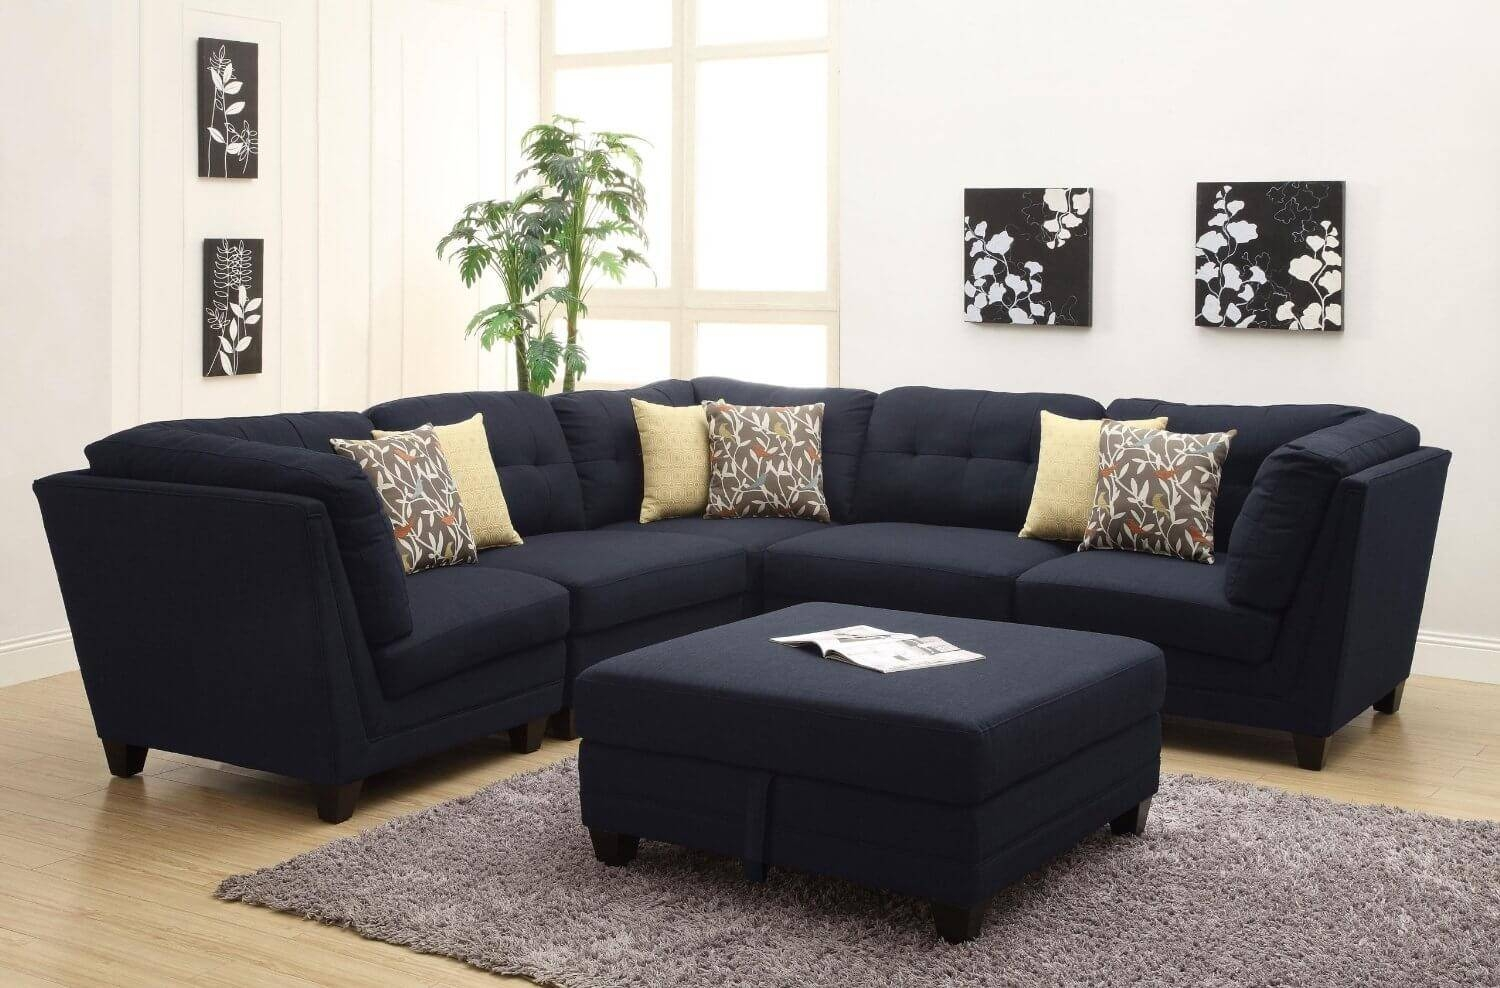 Contemporary Black Leather Sectional Sofa Left Side Chaise Pertaining To Contemporary Black Leather Sectional Sofa Left Side Chaise (View 11 of 30)